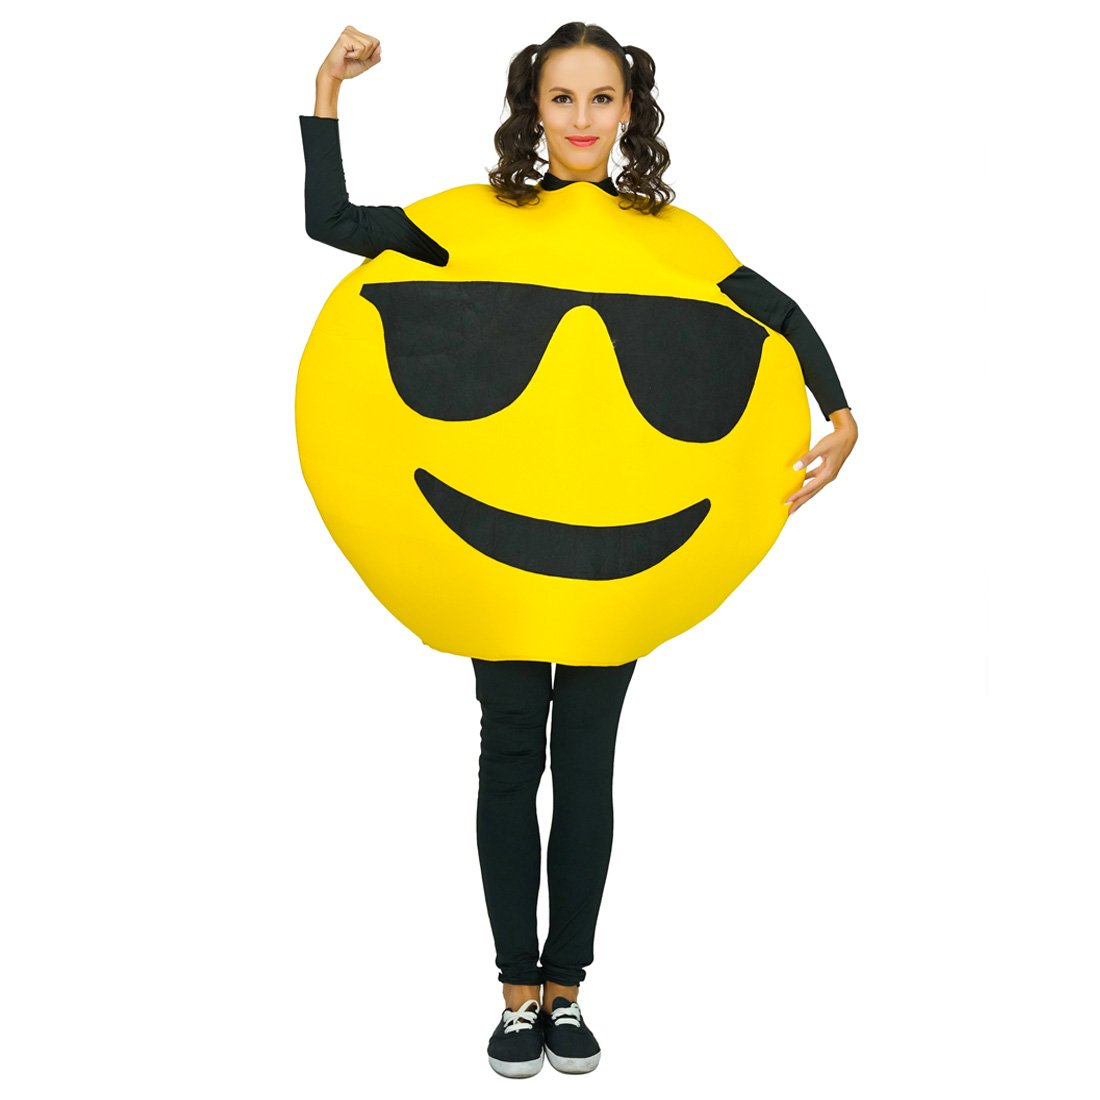 Adult Unisex Emoticon Costumes One Size (Sunglass) by Unknown